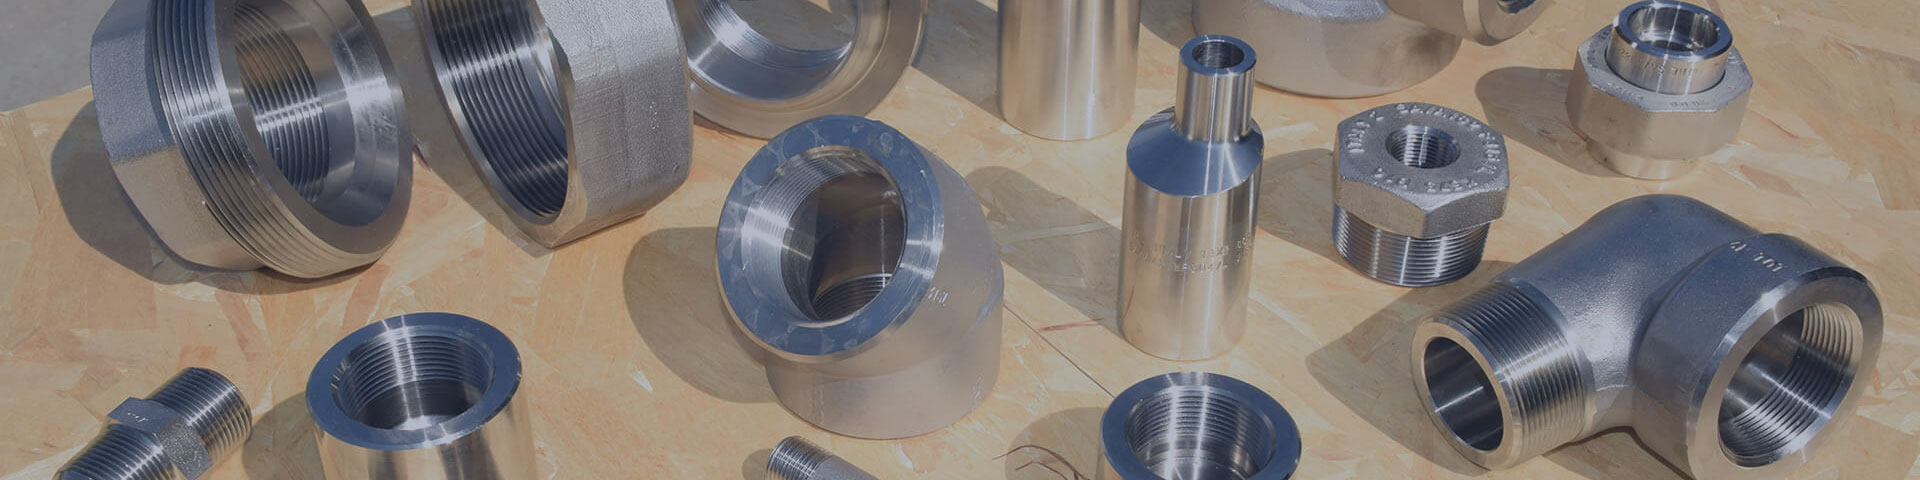 Stainless Steel 347 Forged Fittings Supplier in Mumbai India